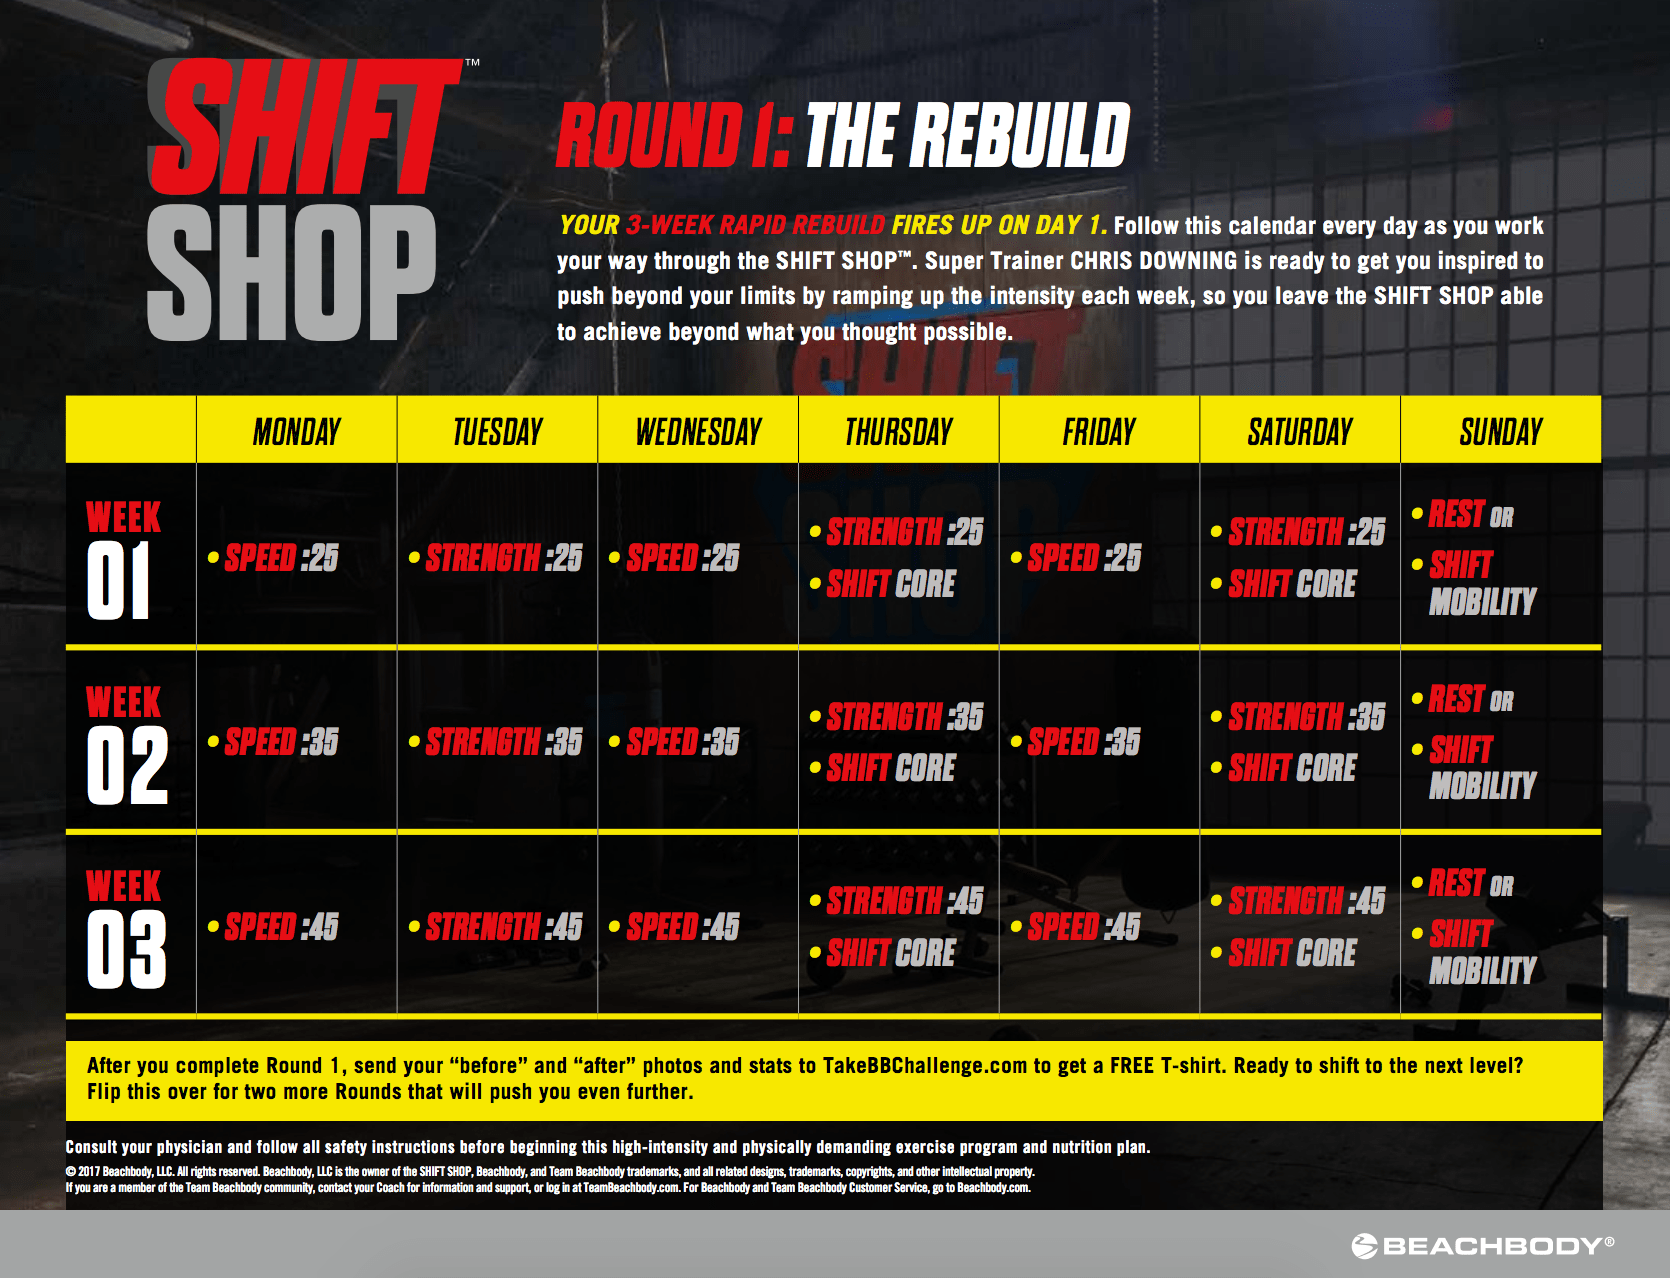 Beachbody Shift Shop Review - Workouts, Meal Plan and ...